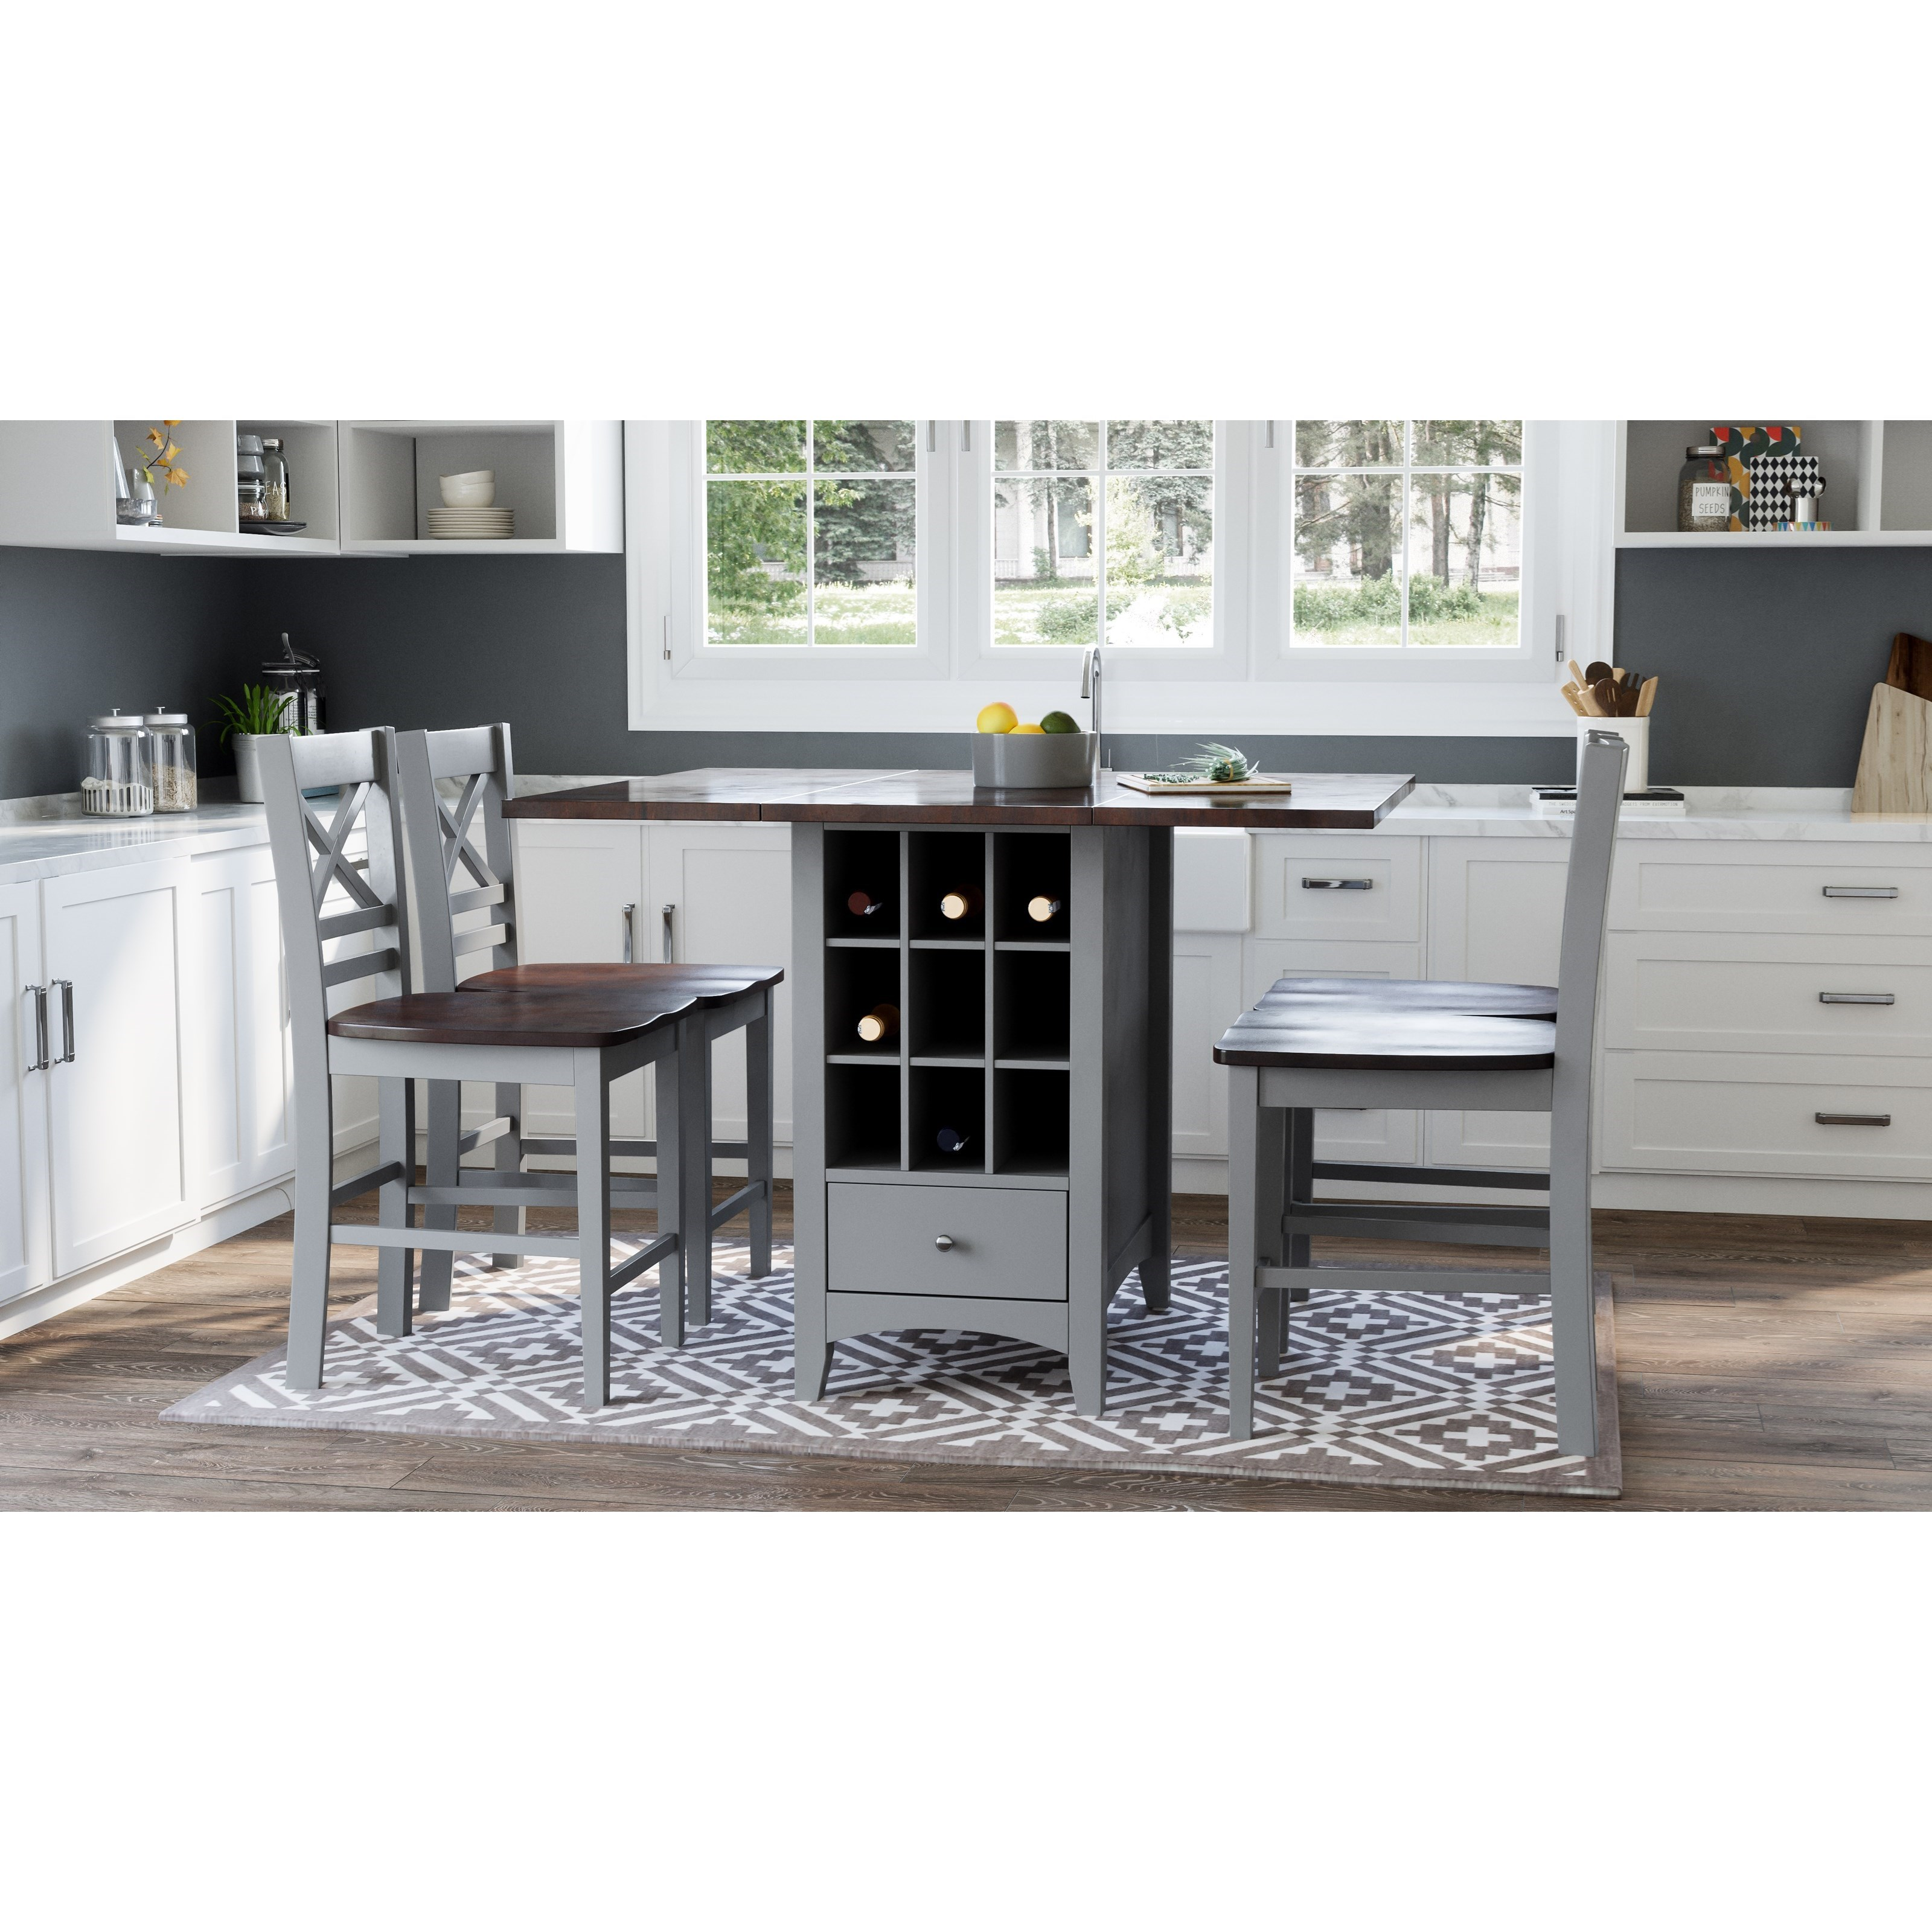 Asbury Park 5-Piece Counter Height Table and Stool Set by Jofran at Darvin Furniture